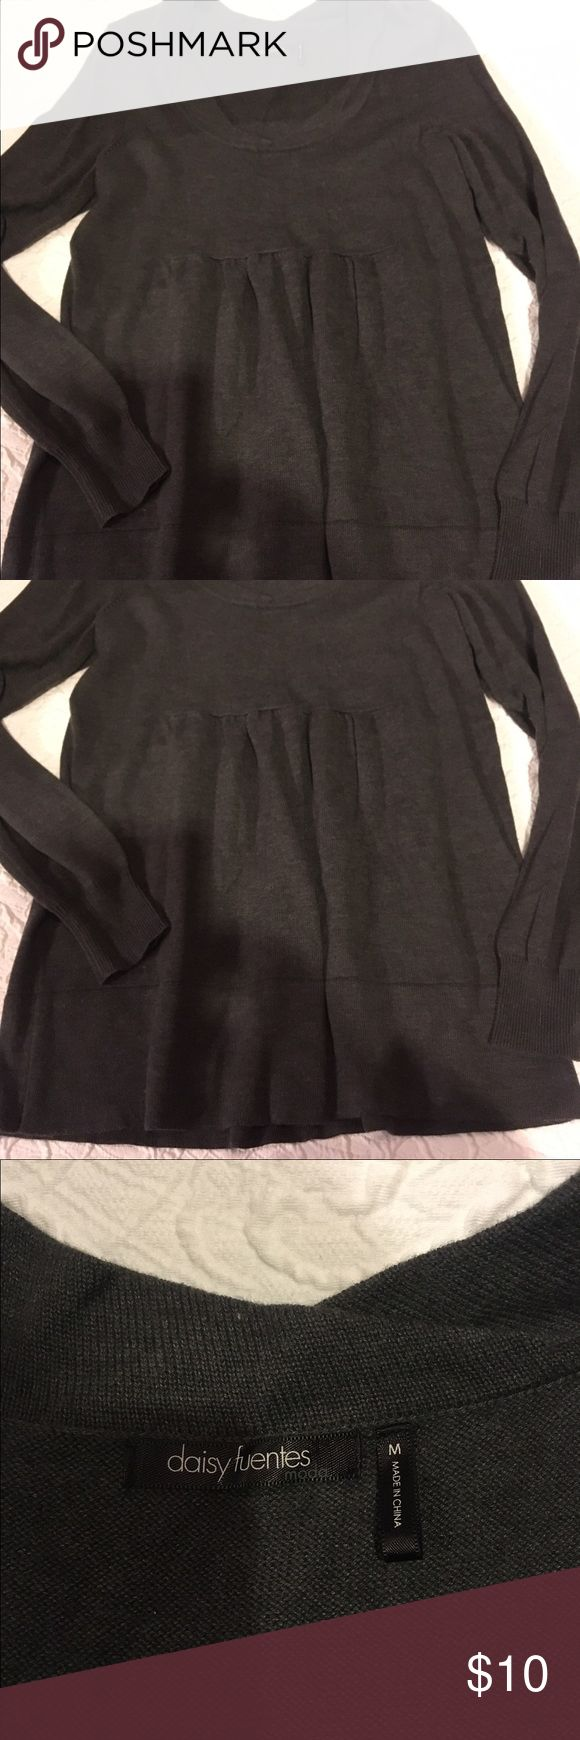 Daisy Fuentes Charcoal Dark Grey Sweater M Daisy Fuentes Charcoal Dark Grey Women's Sweater Size M. Perfect Condition! Never Been in the dryer! Daisy Fuentes Sweaters Crew & Scoop Necks